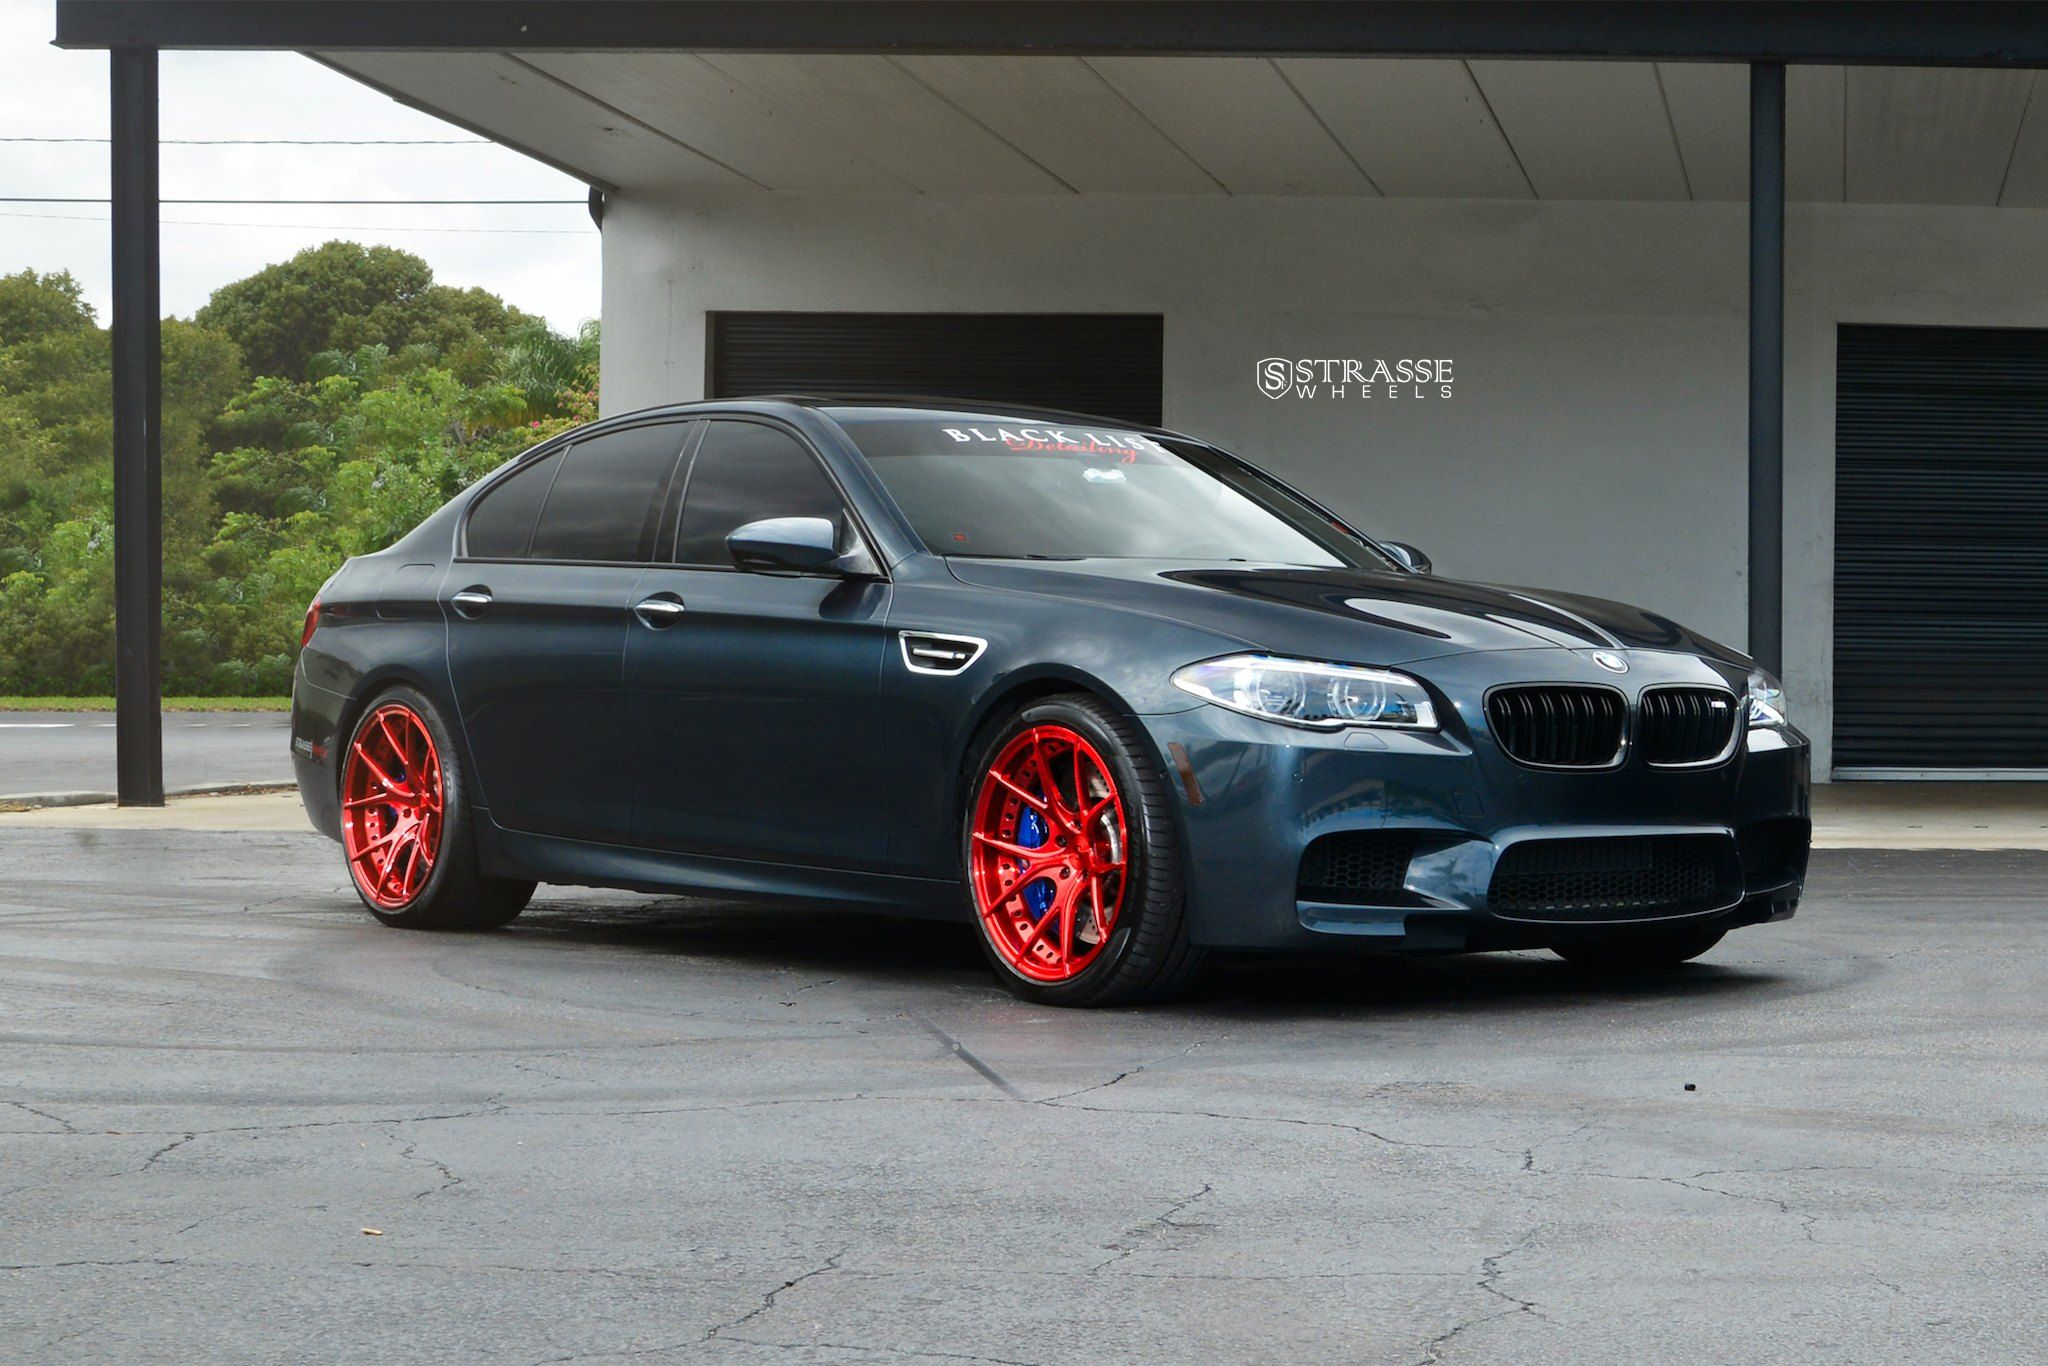 For Show Dark Blue Bmw 5 Series Put On Candy Red Wheels Bmw 5